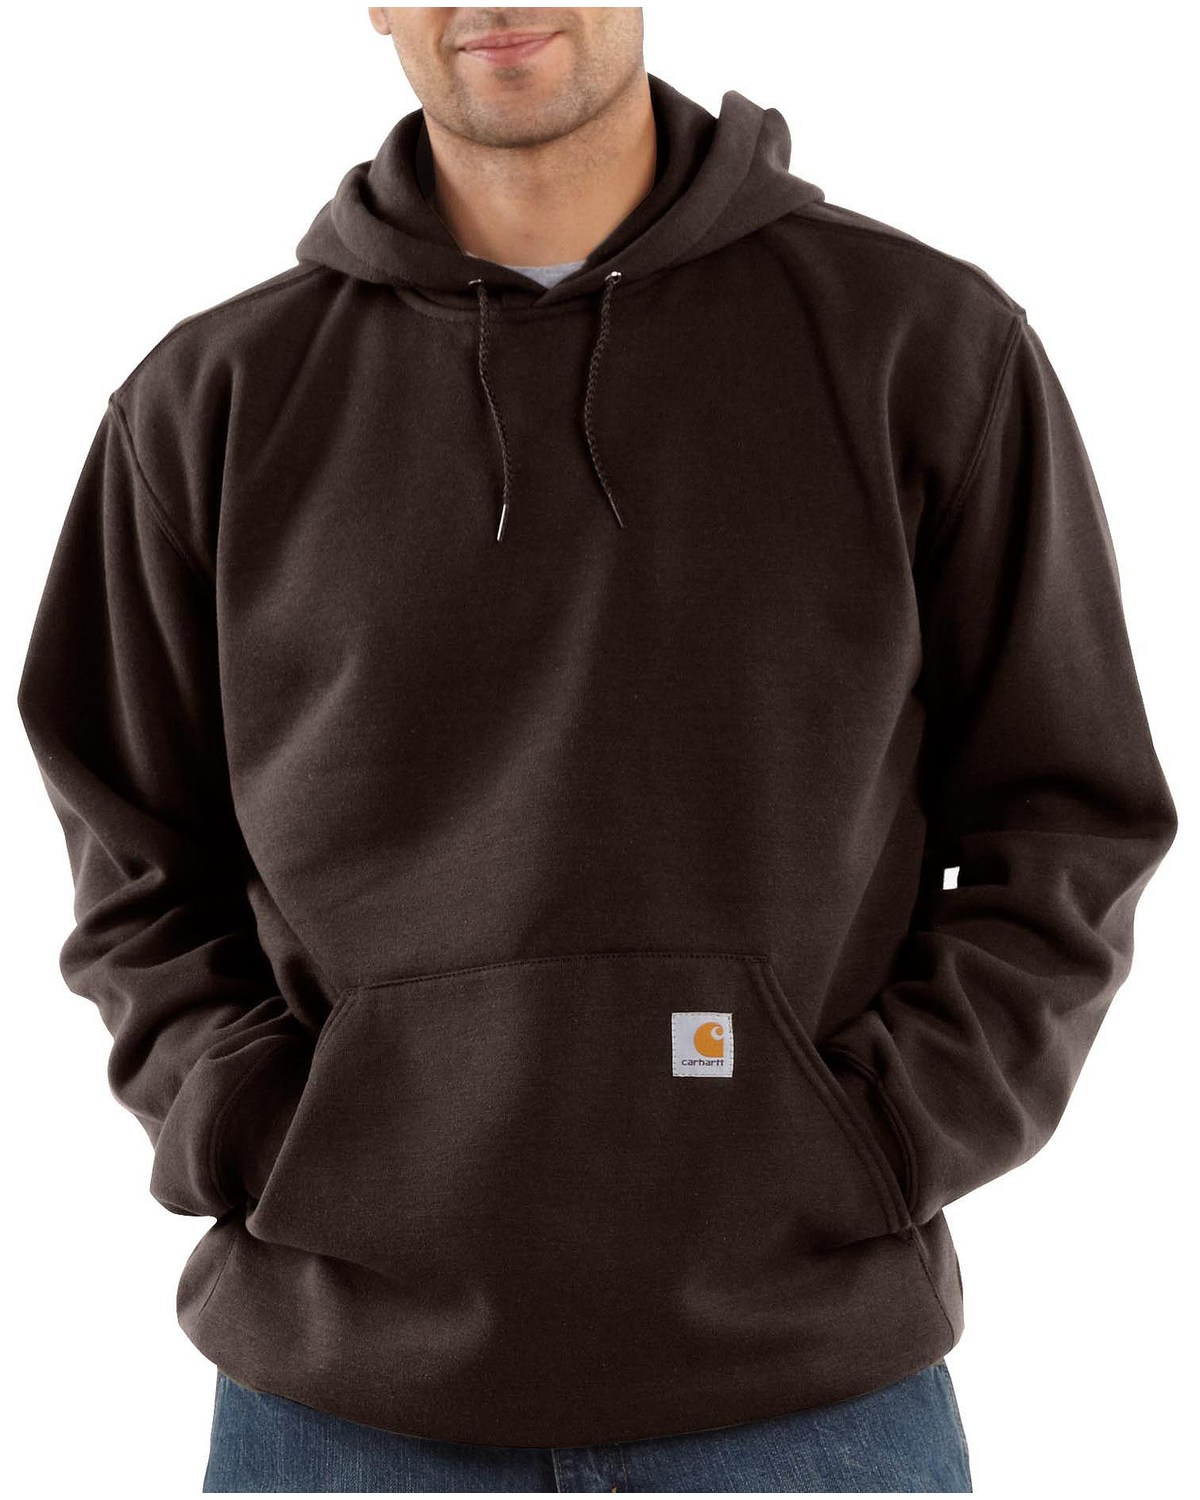 921e56494f Zoomed Image Carhartt Men's Midweight Hooded Pullover Sweatshirt, Dark  Brown, hi-res